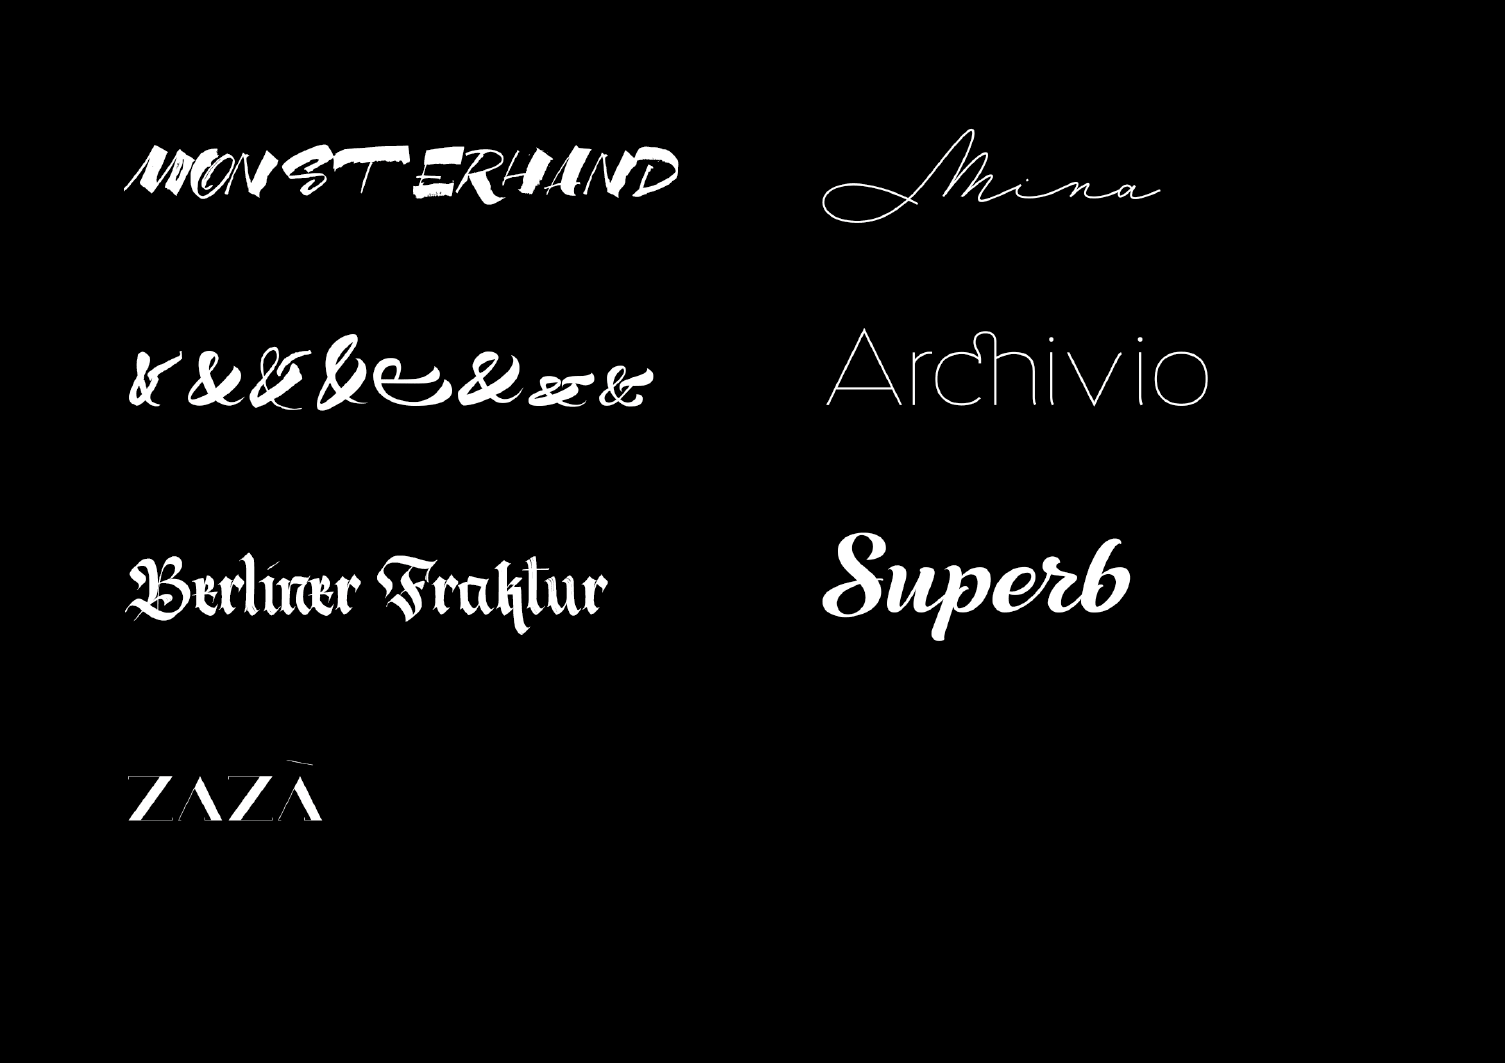 A small sample of the many beautiful retail typefaces designed and published by the Resistenza collaboration.